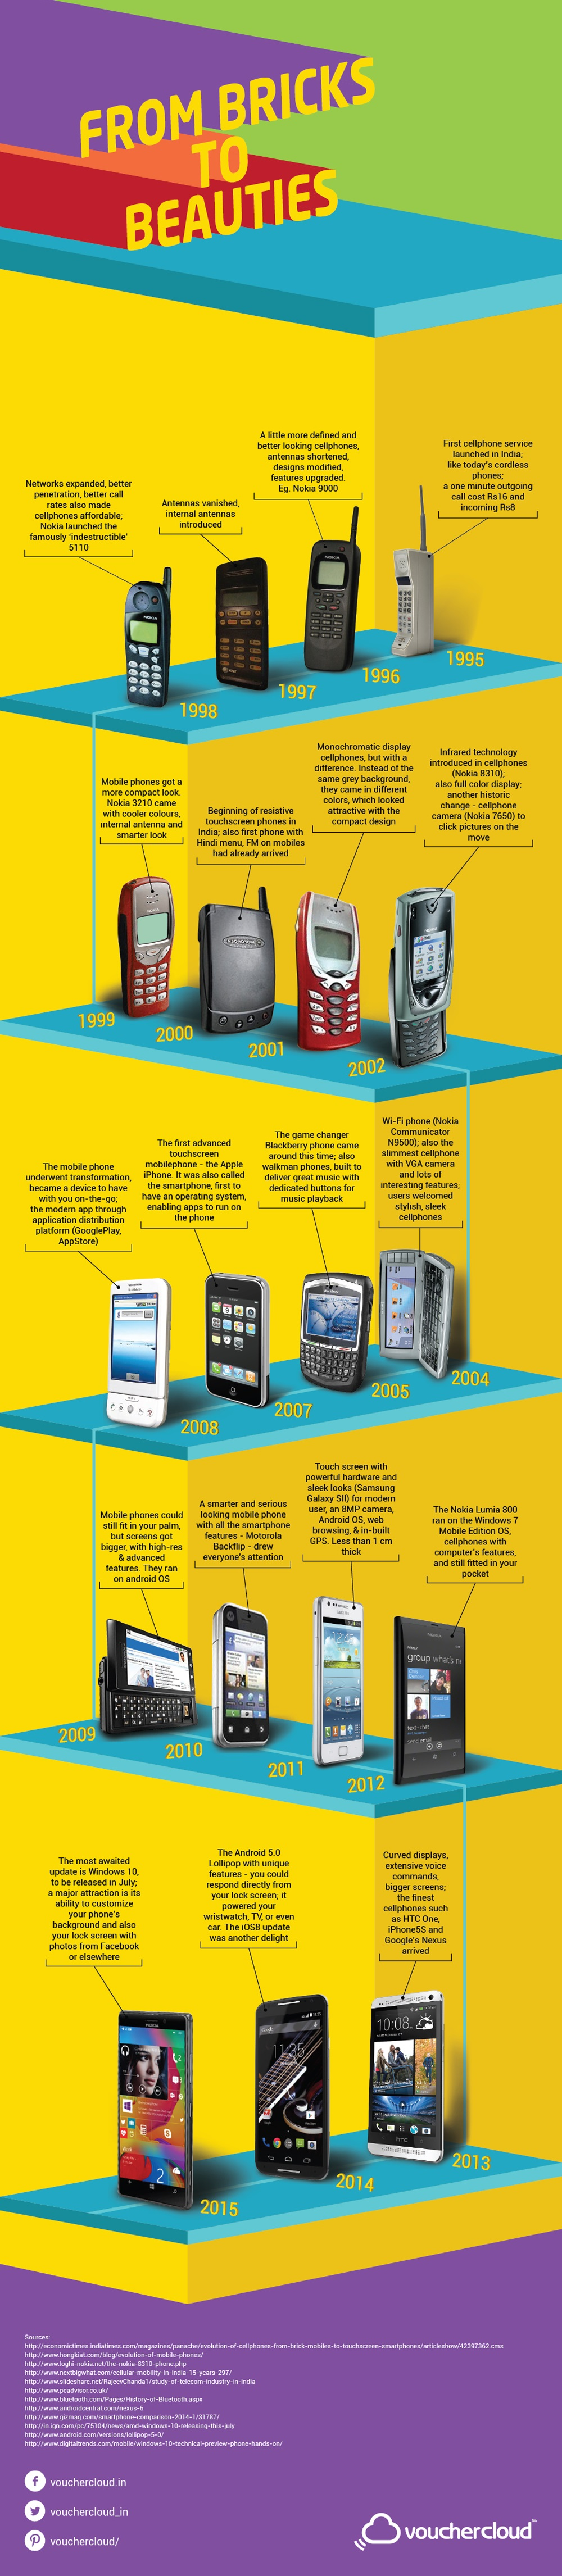 From Bricks to Beauties: The Evolution of the Smartphone